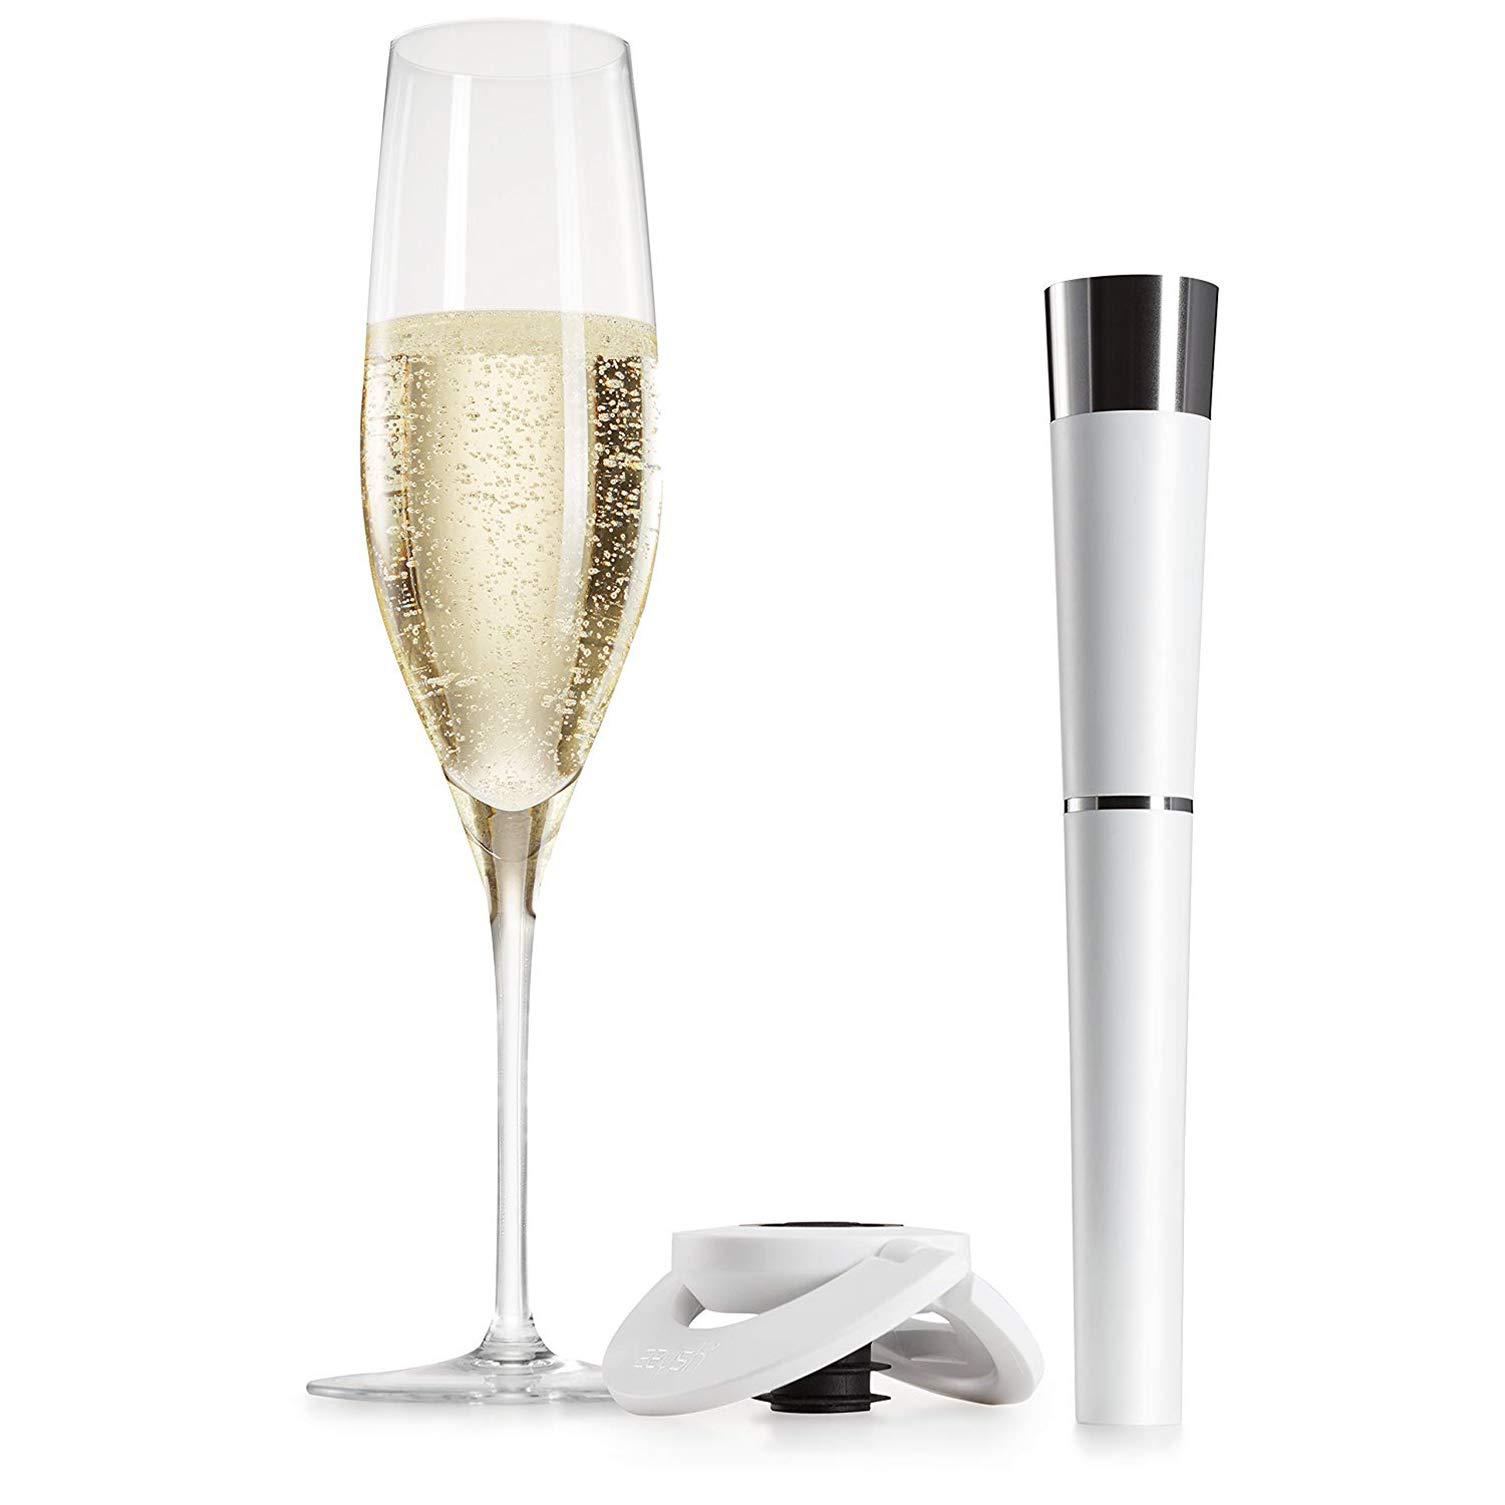 zzysh Champagne Starter Set with Hand Piece, Stopper, 1 Cartridge and Instruction Manual, 3 x 3 x 19.6 cm, ABS/Stainless Steel, White, 200-0020-1002 by zzysh